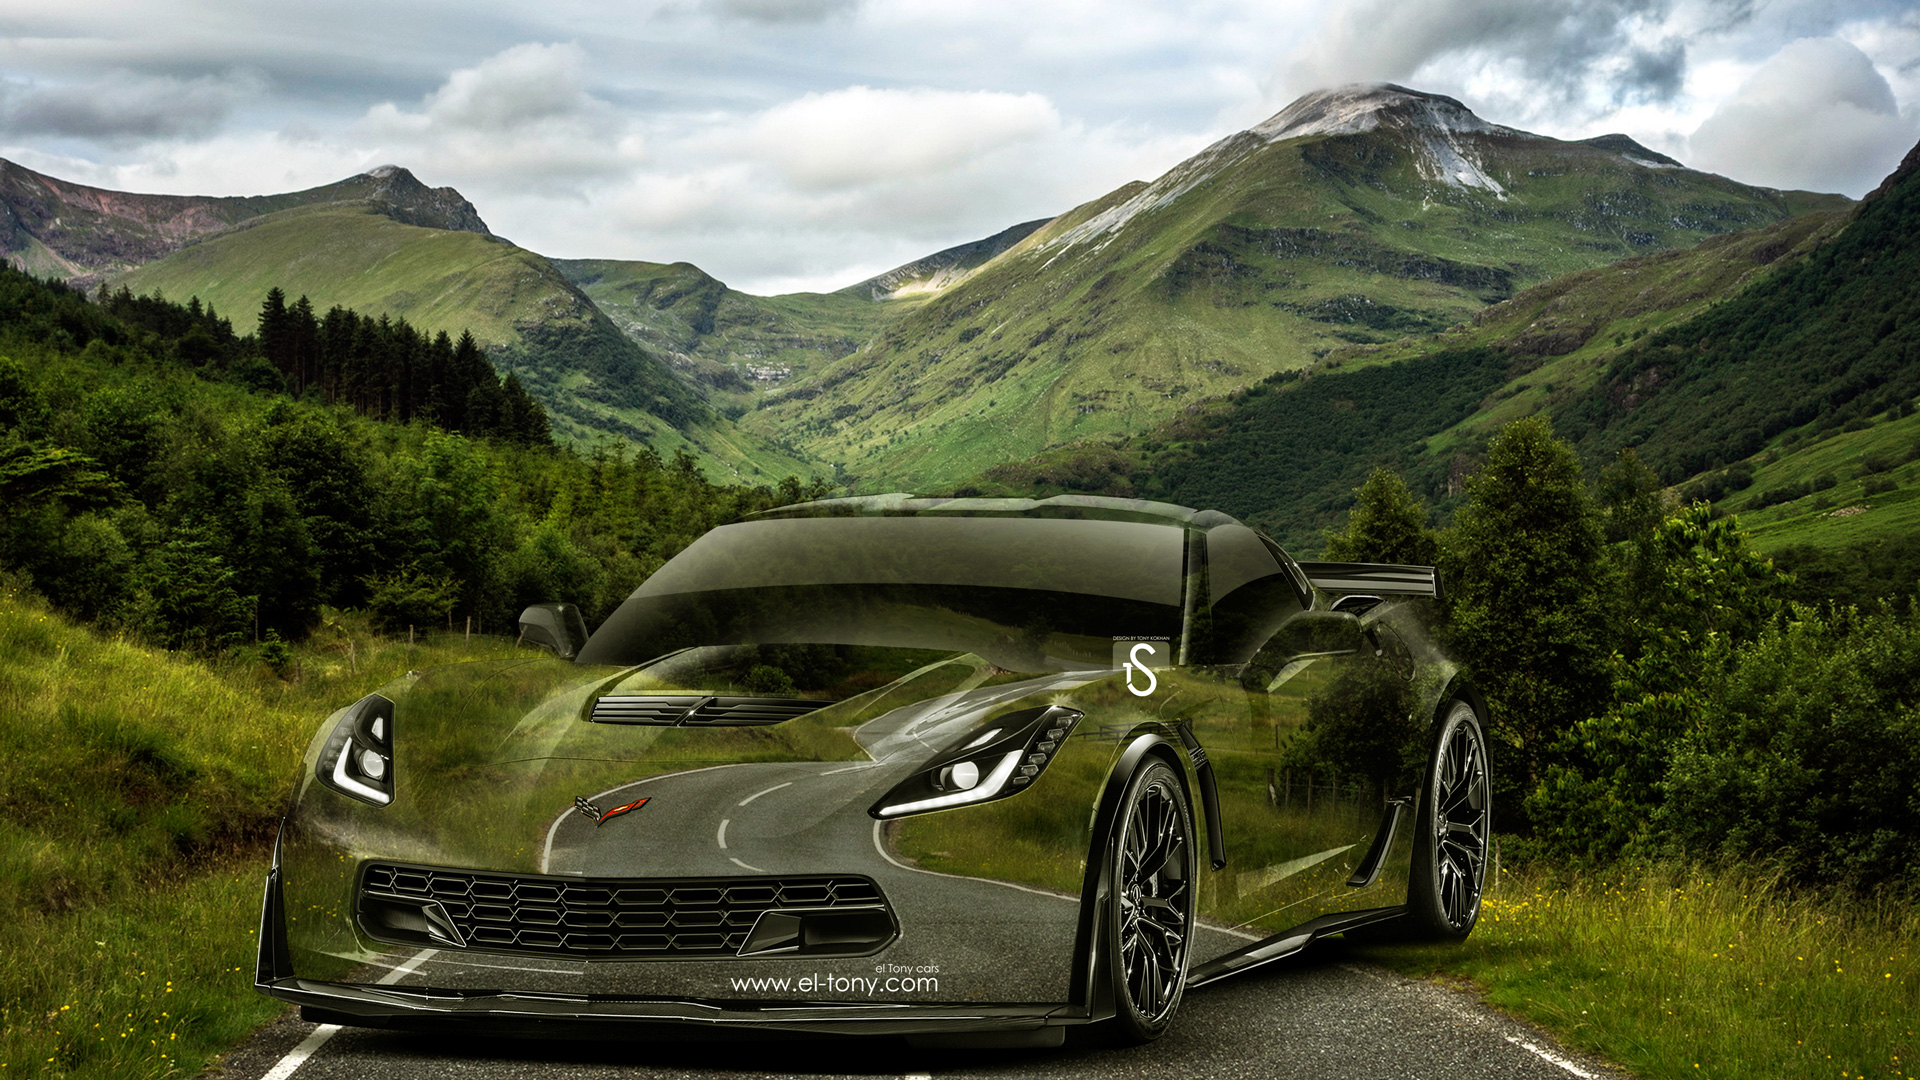 Chevrolet Corvette Z06 Crystal Nature Road Car 2014